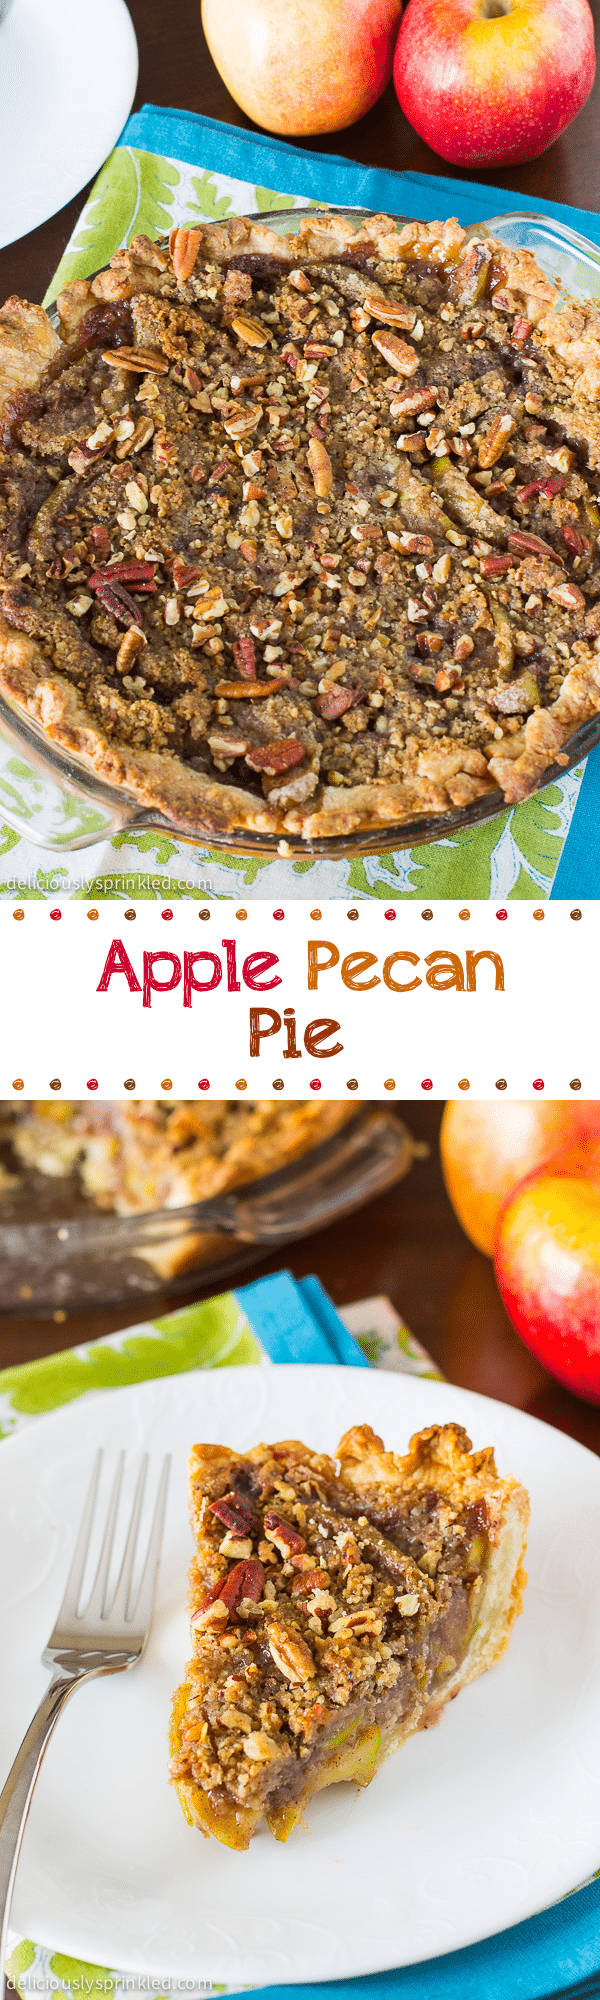 EASY APPLE PECAN PIE RECIPE